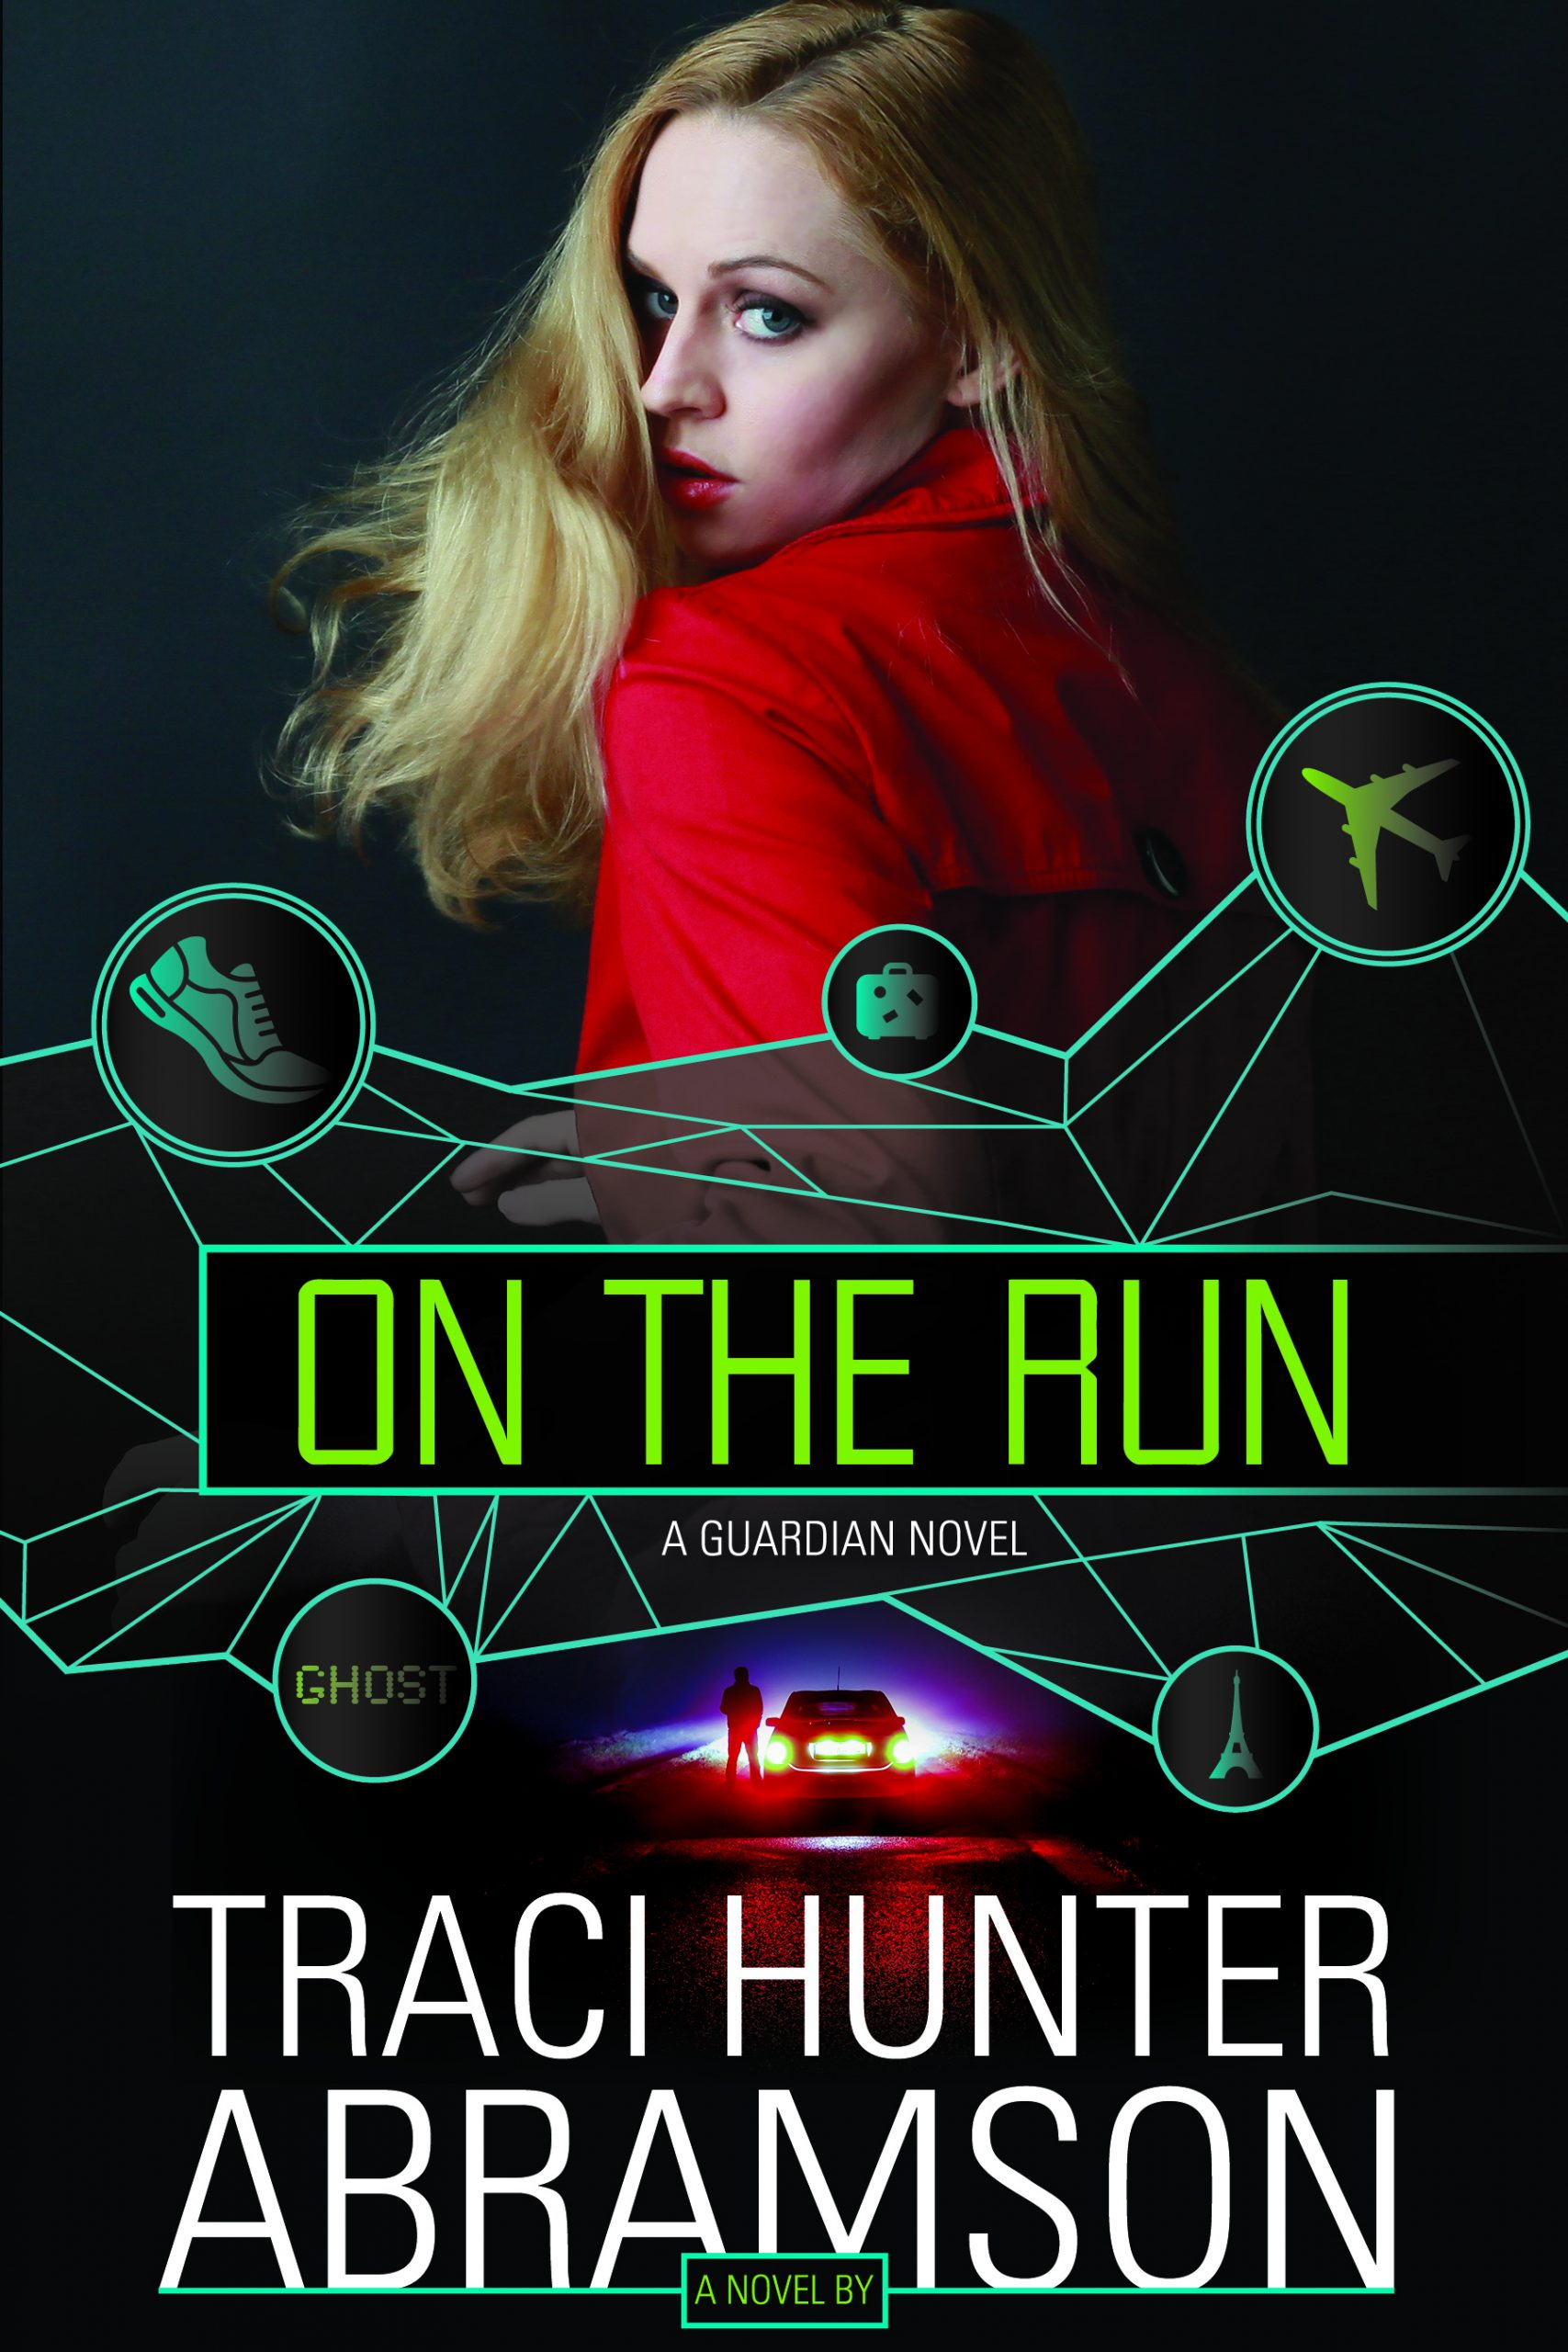 On the Run by Traci Hunter Abramson